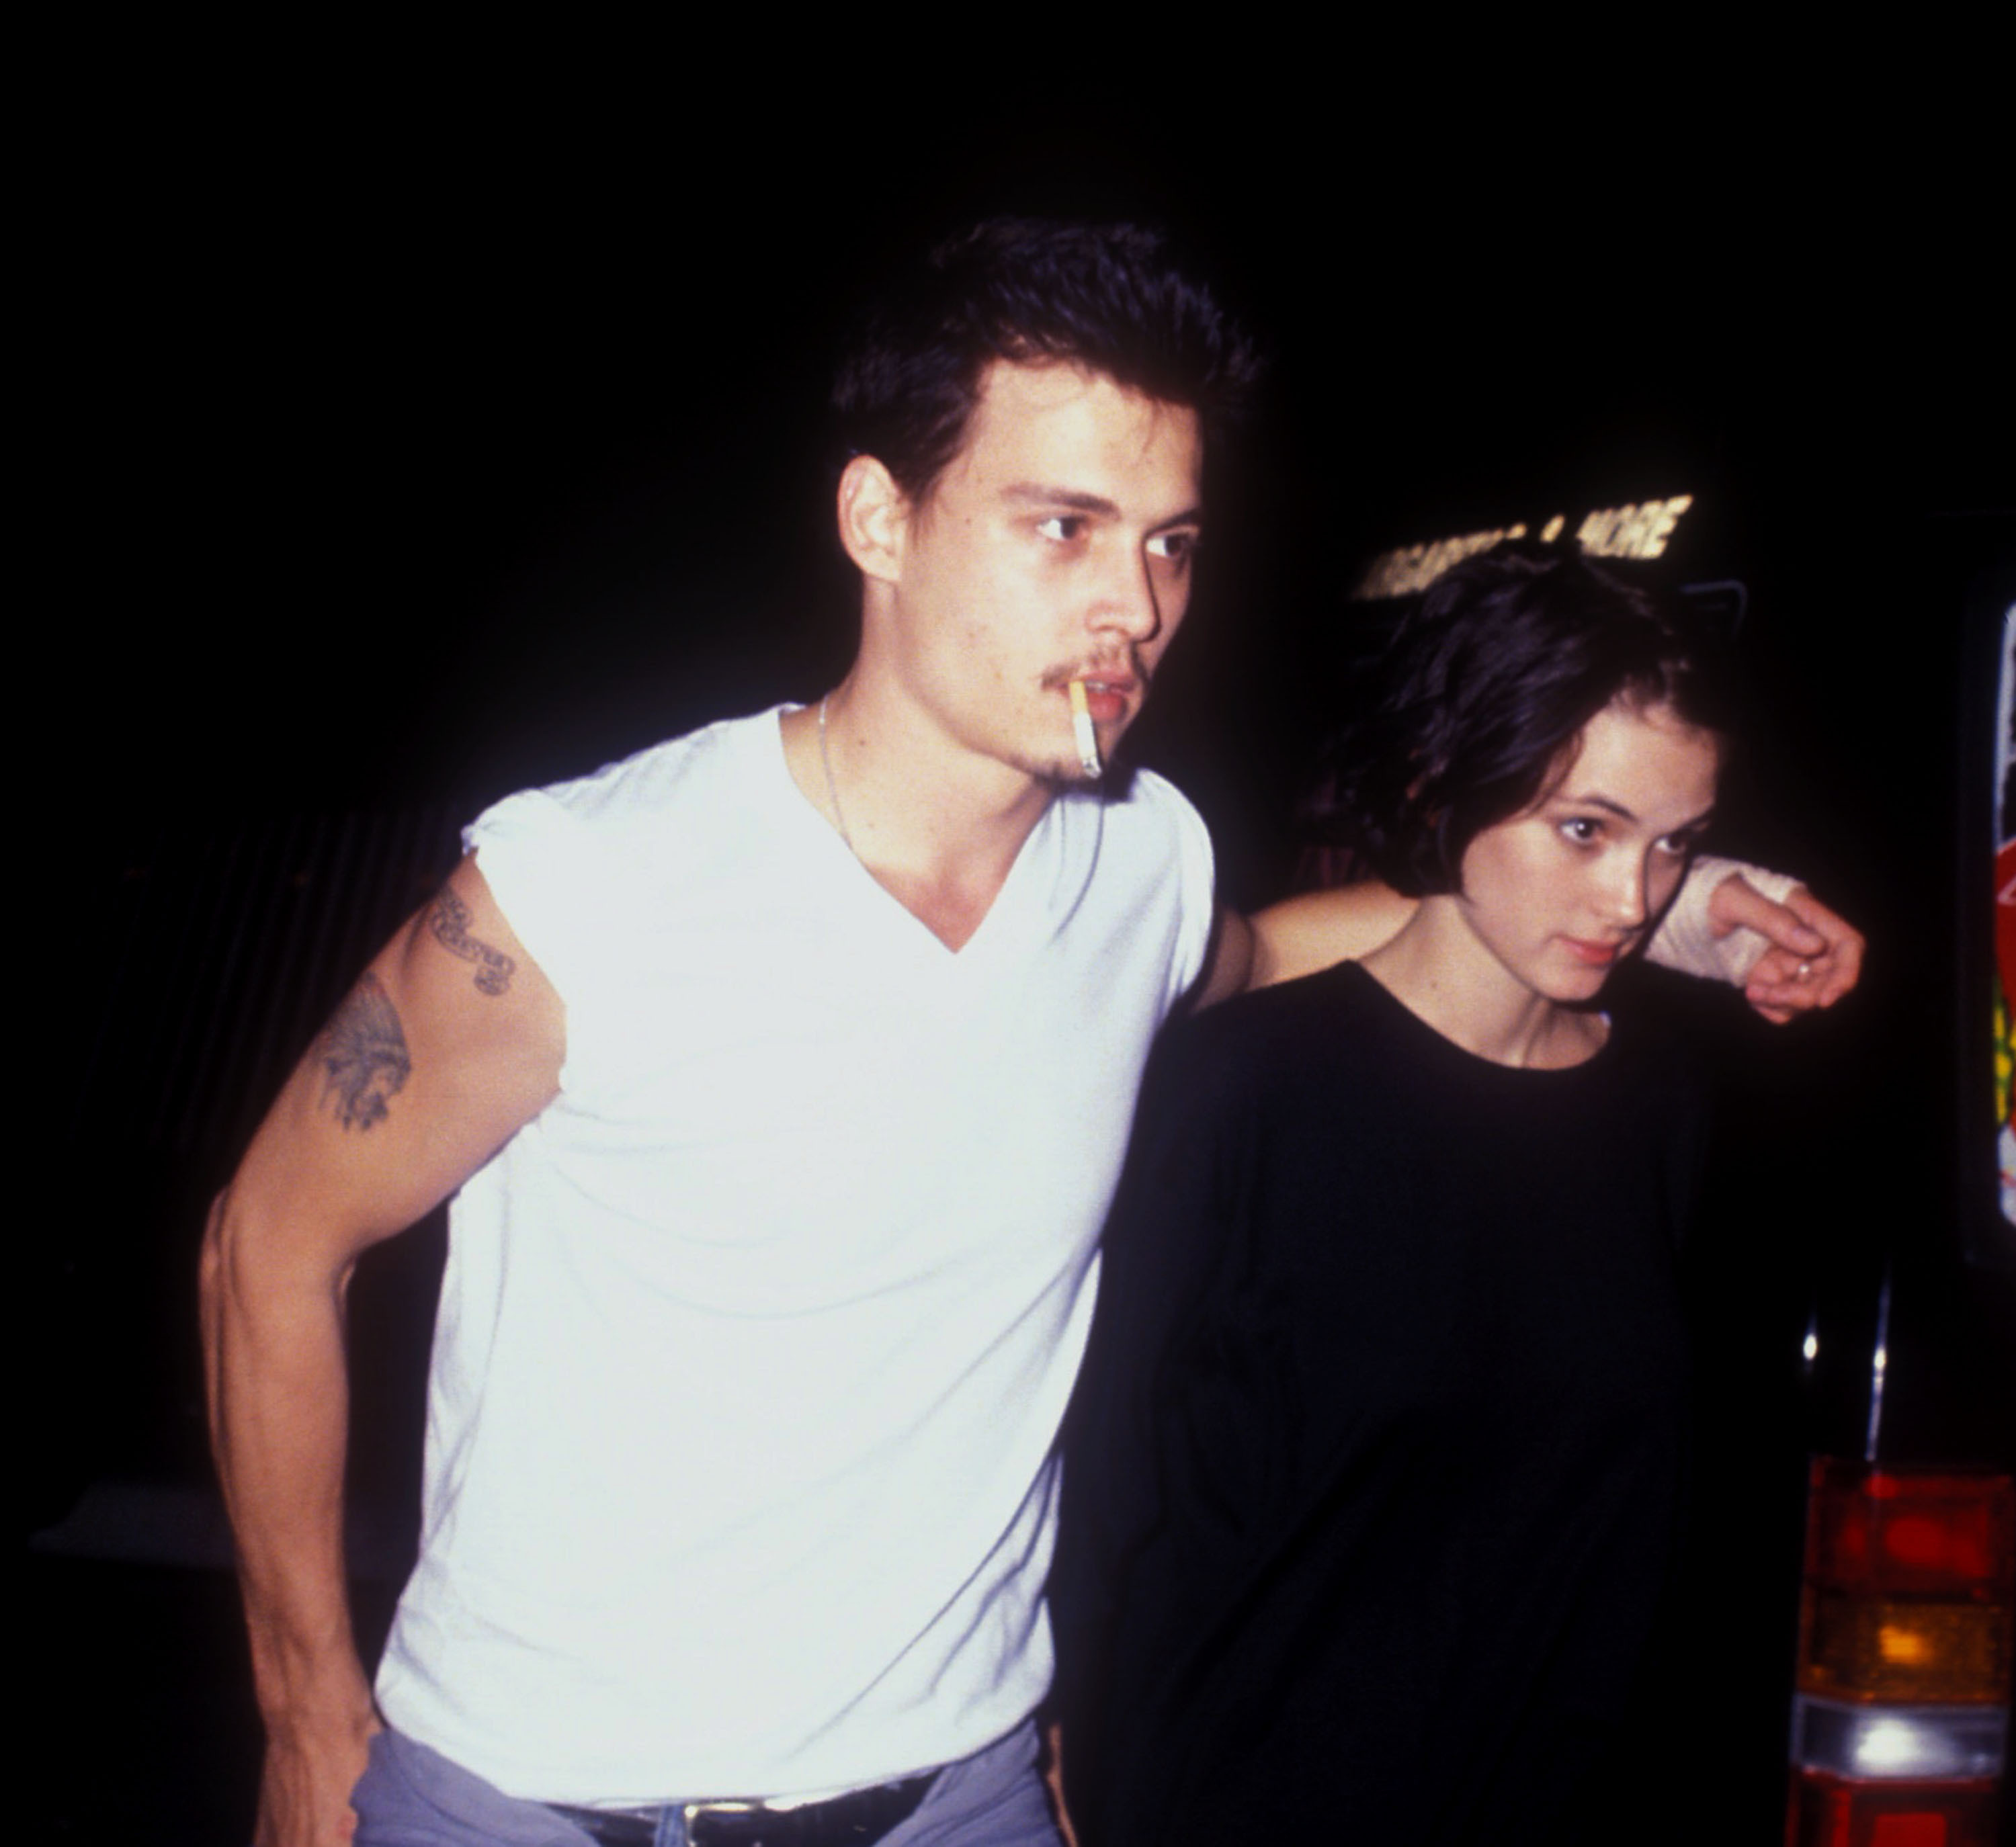 Johnny Depp and Winona Ryder are shown at Herb Ritts birthday party in 1990.